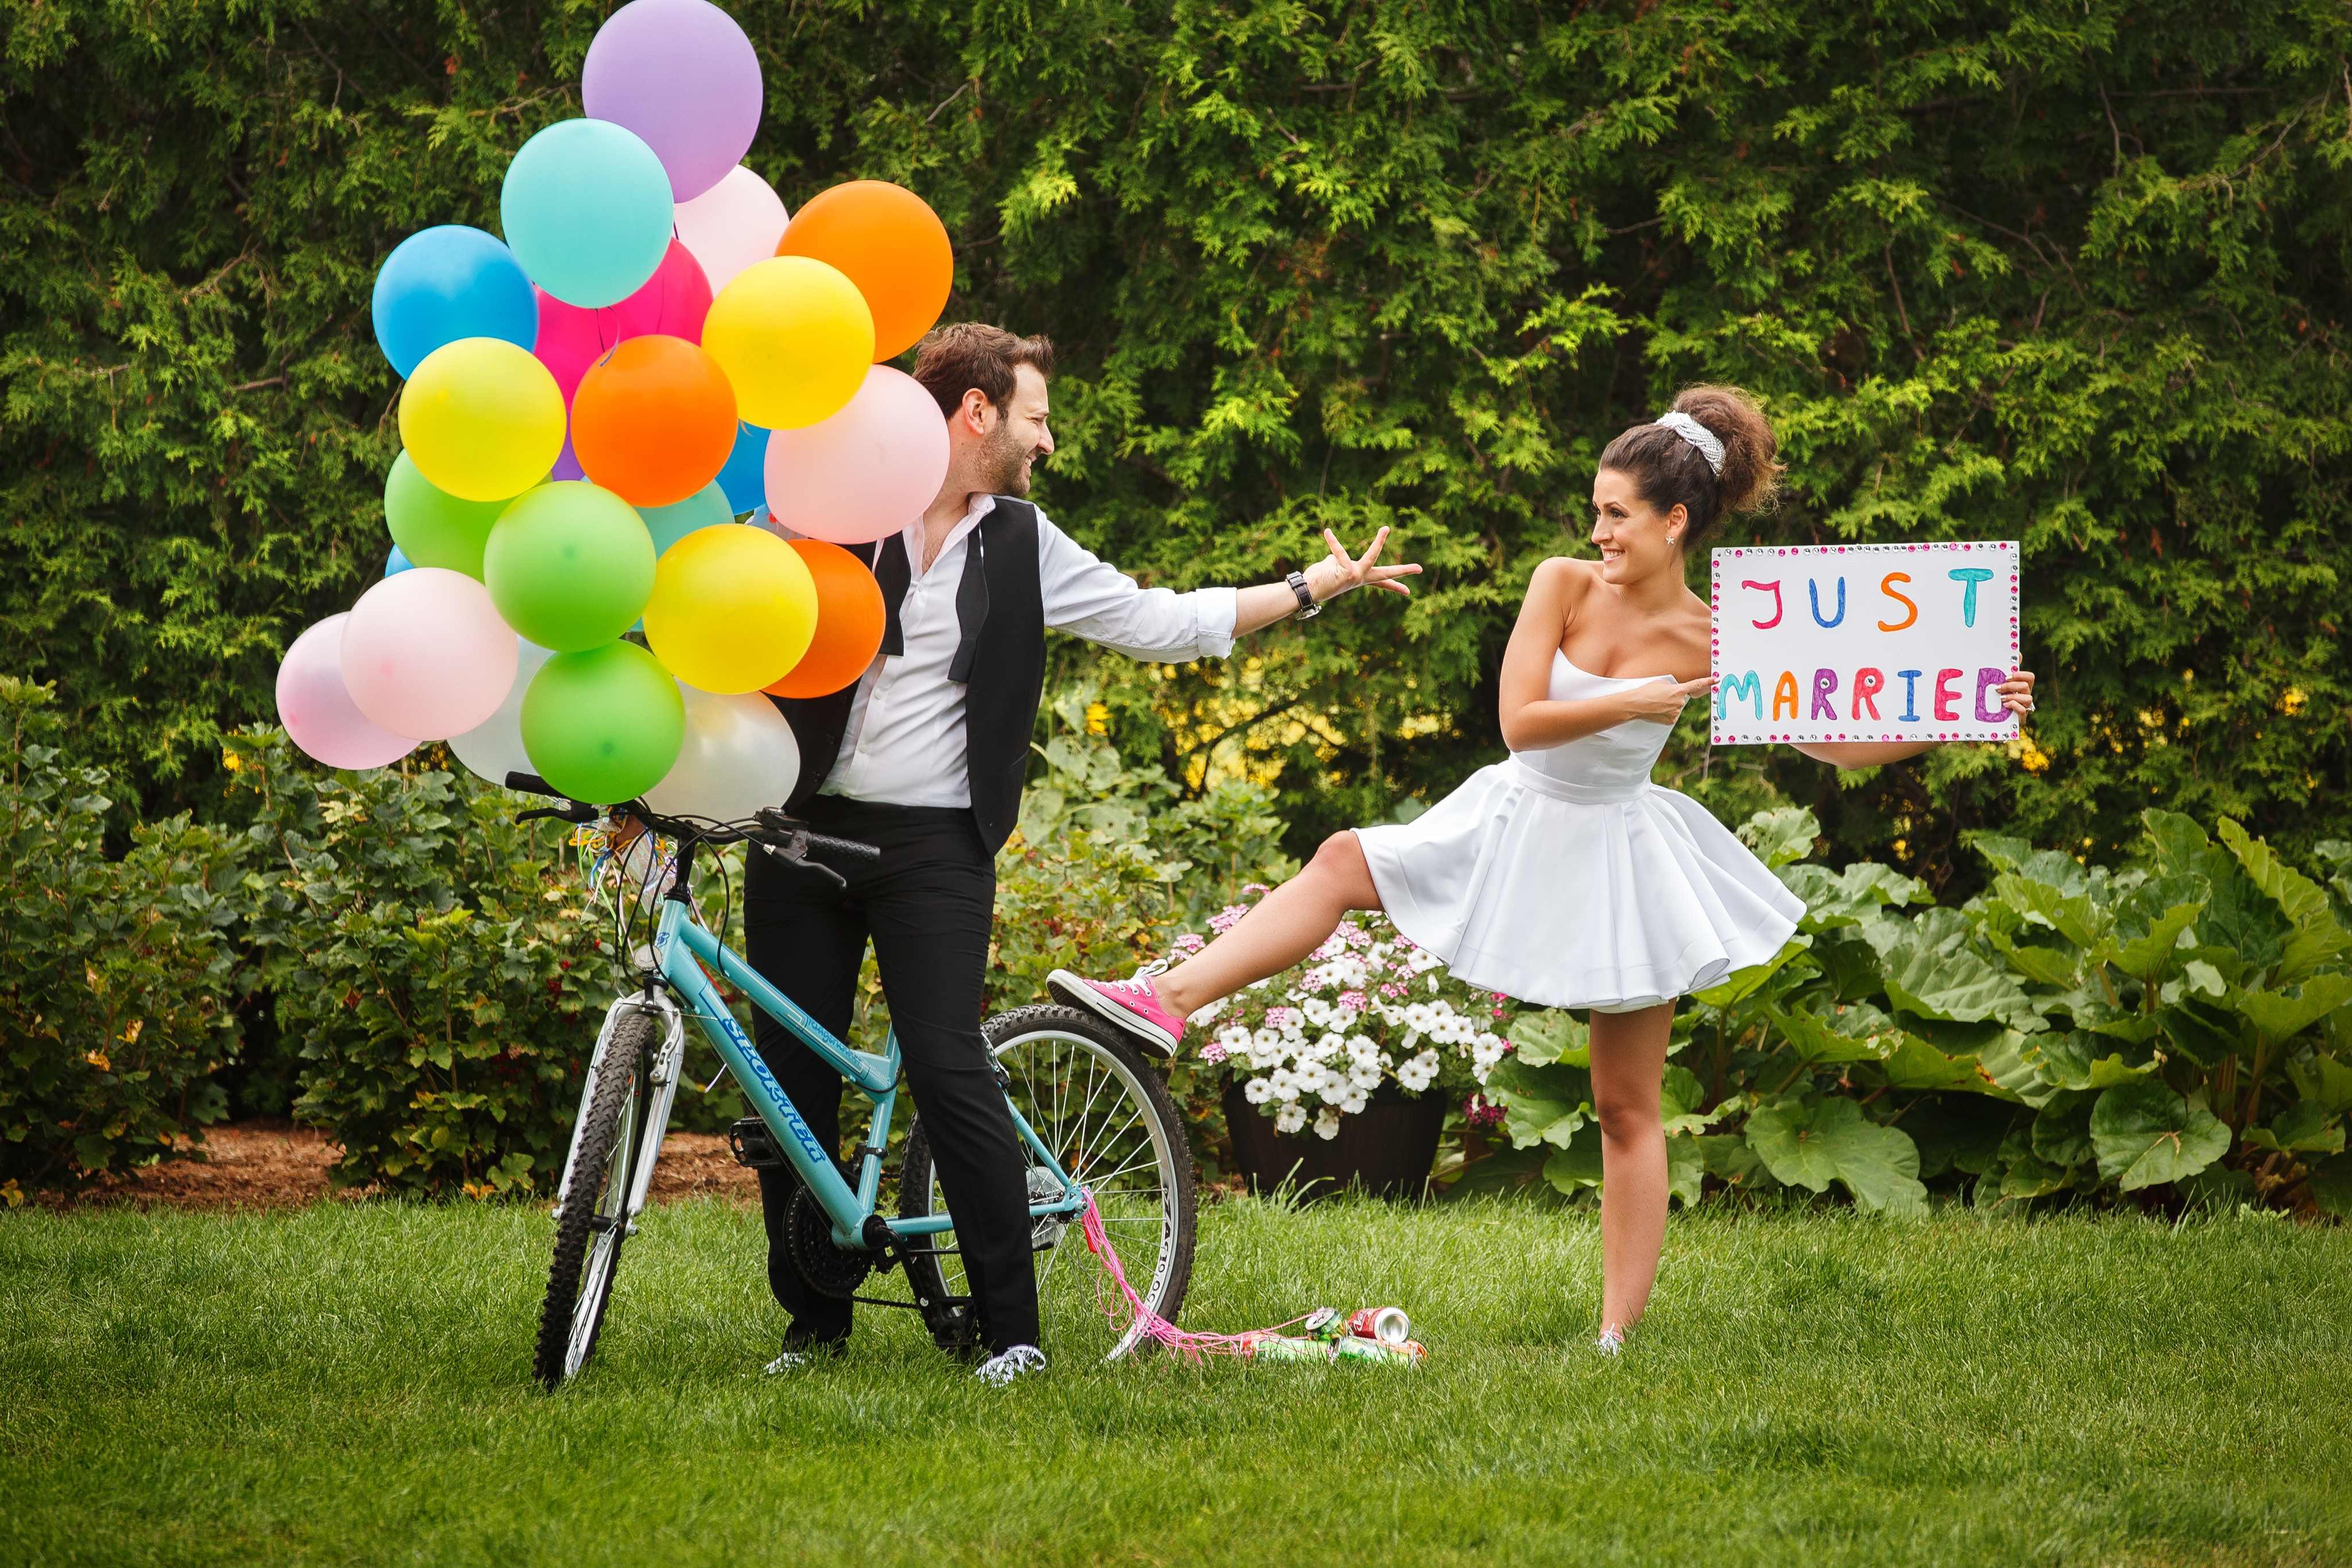 wedding creative funny photo shoot ideas